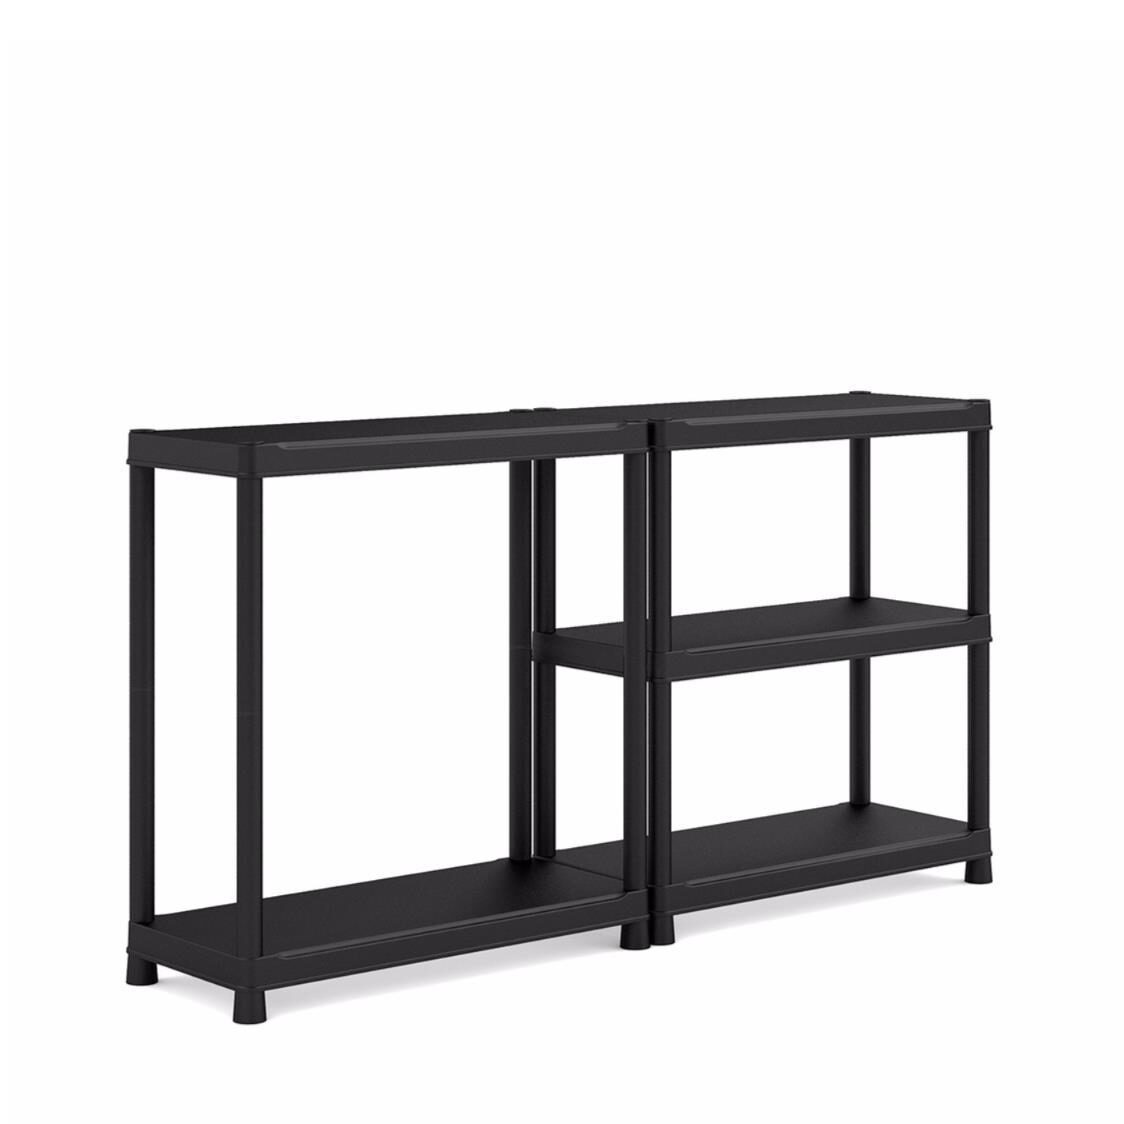 Shelf Plus 90405